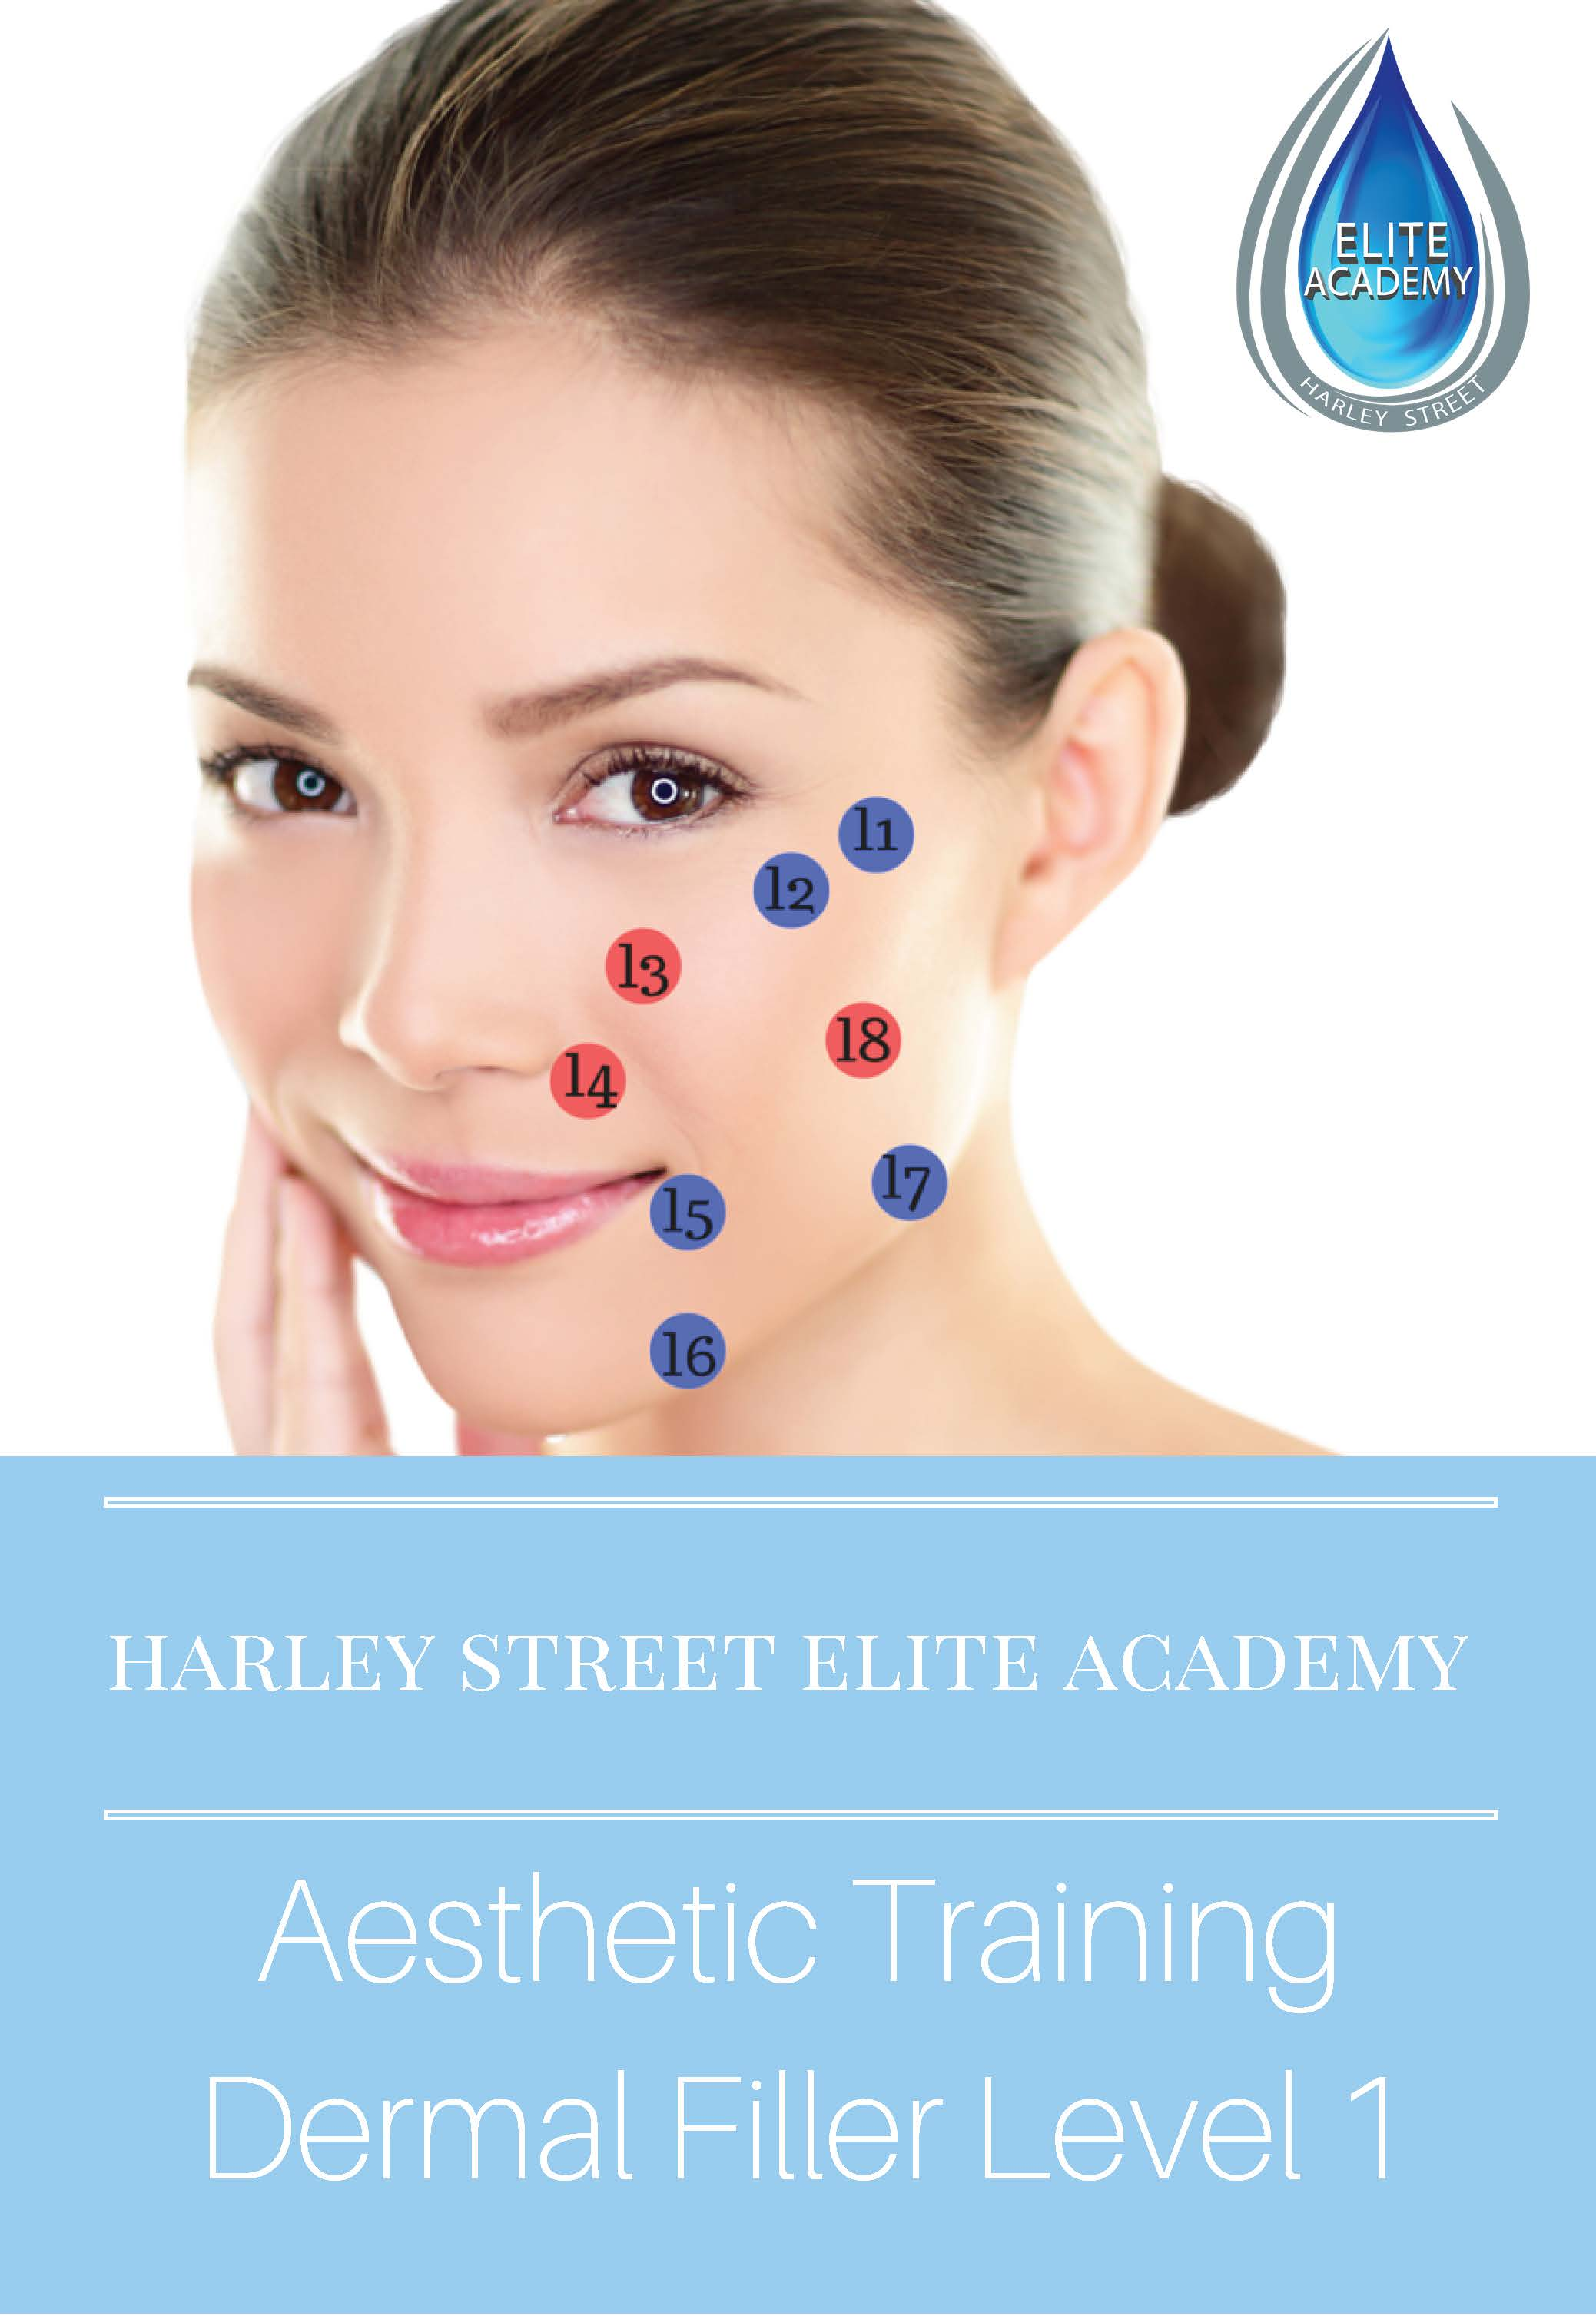 Dermal Filler Level 1